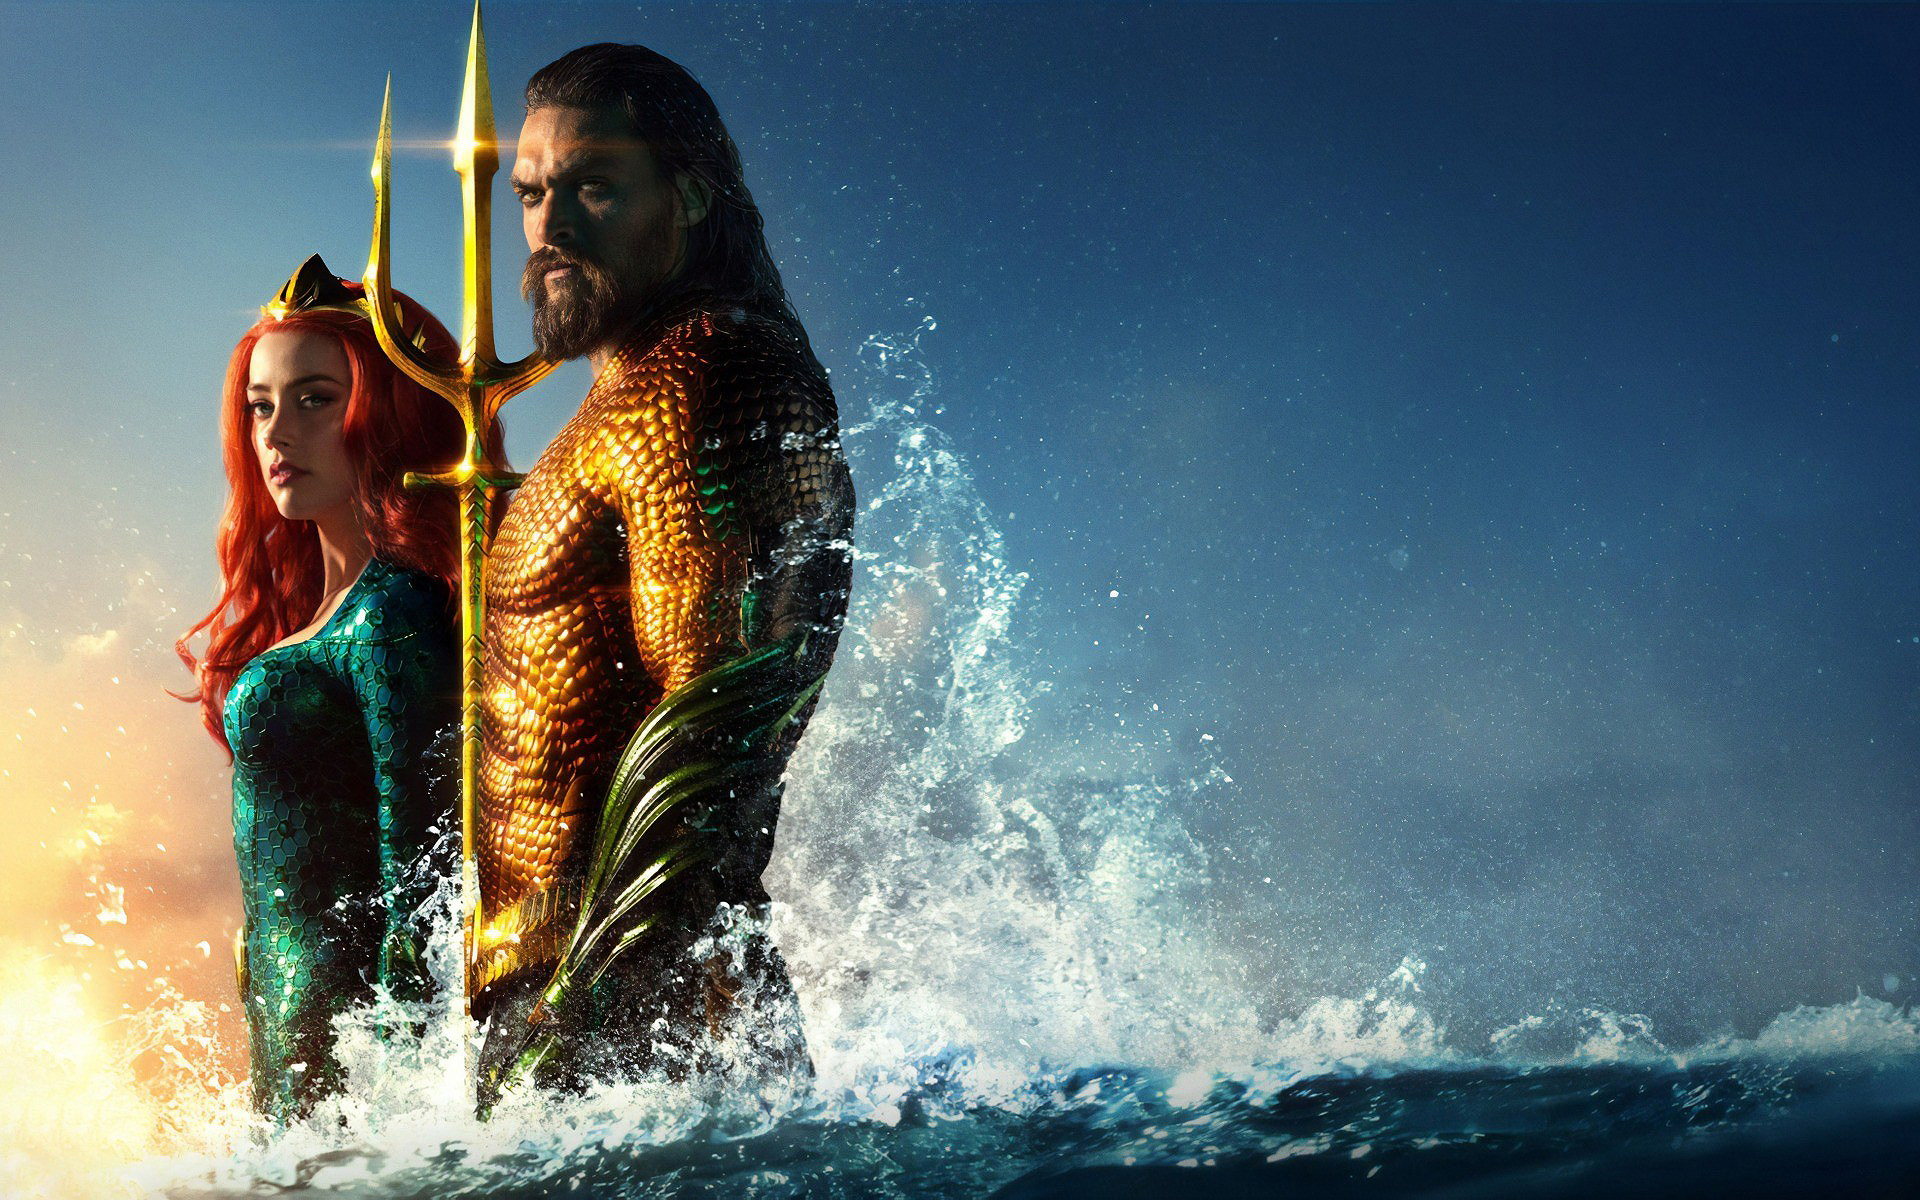 HDoboi.Kiev.ua - Мера аквамен обои, aquaman 2019 wallpaper, Эмбер Херд